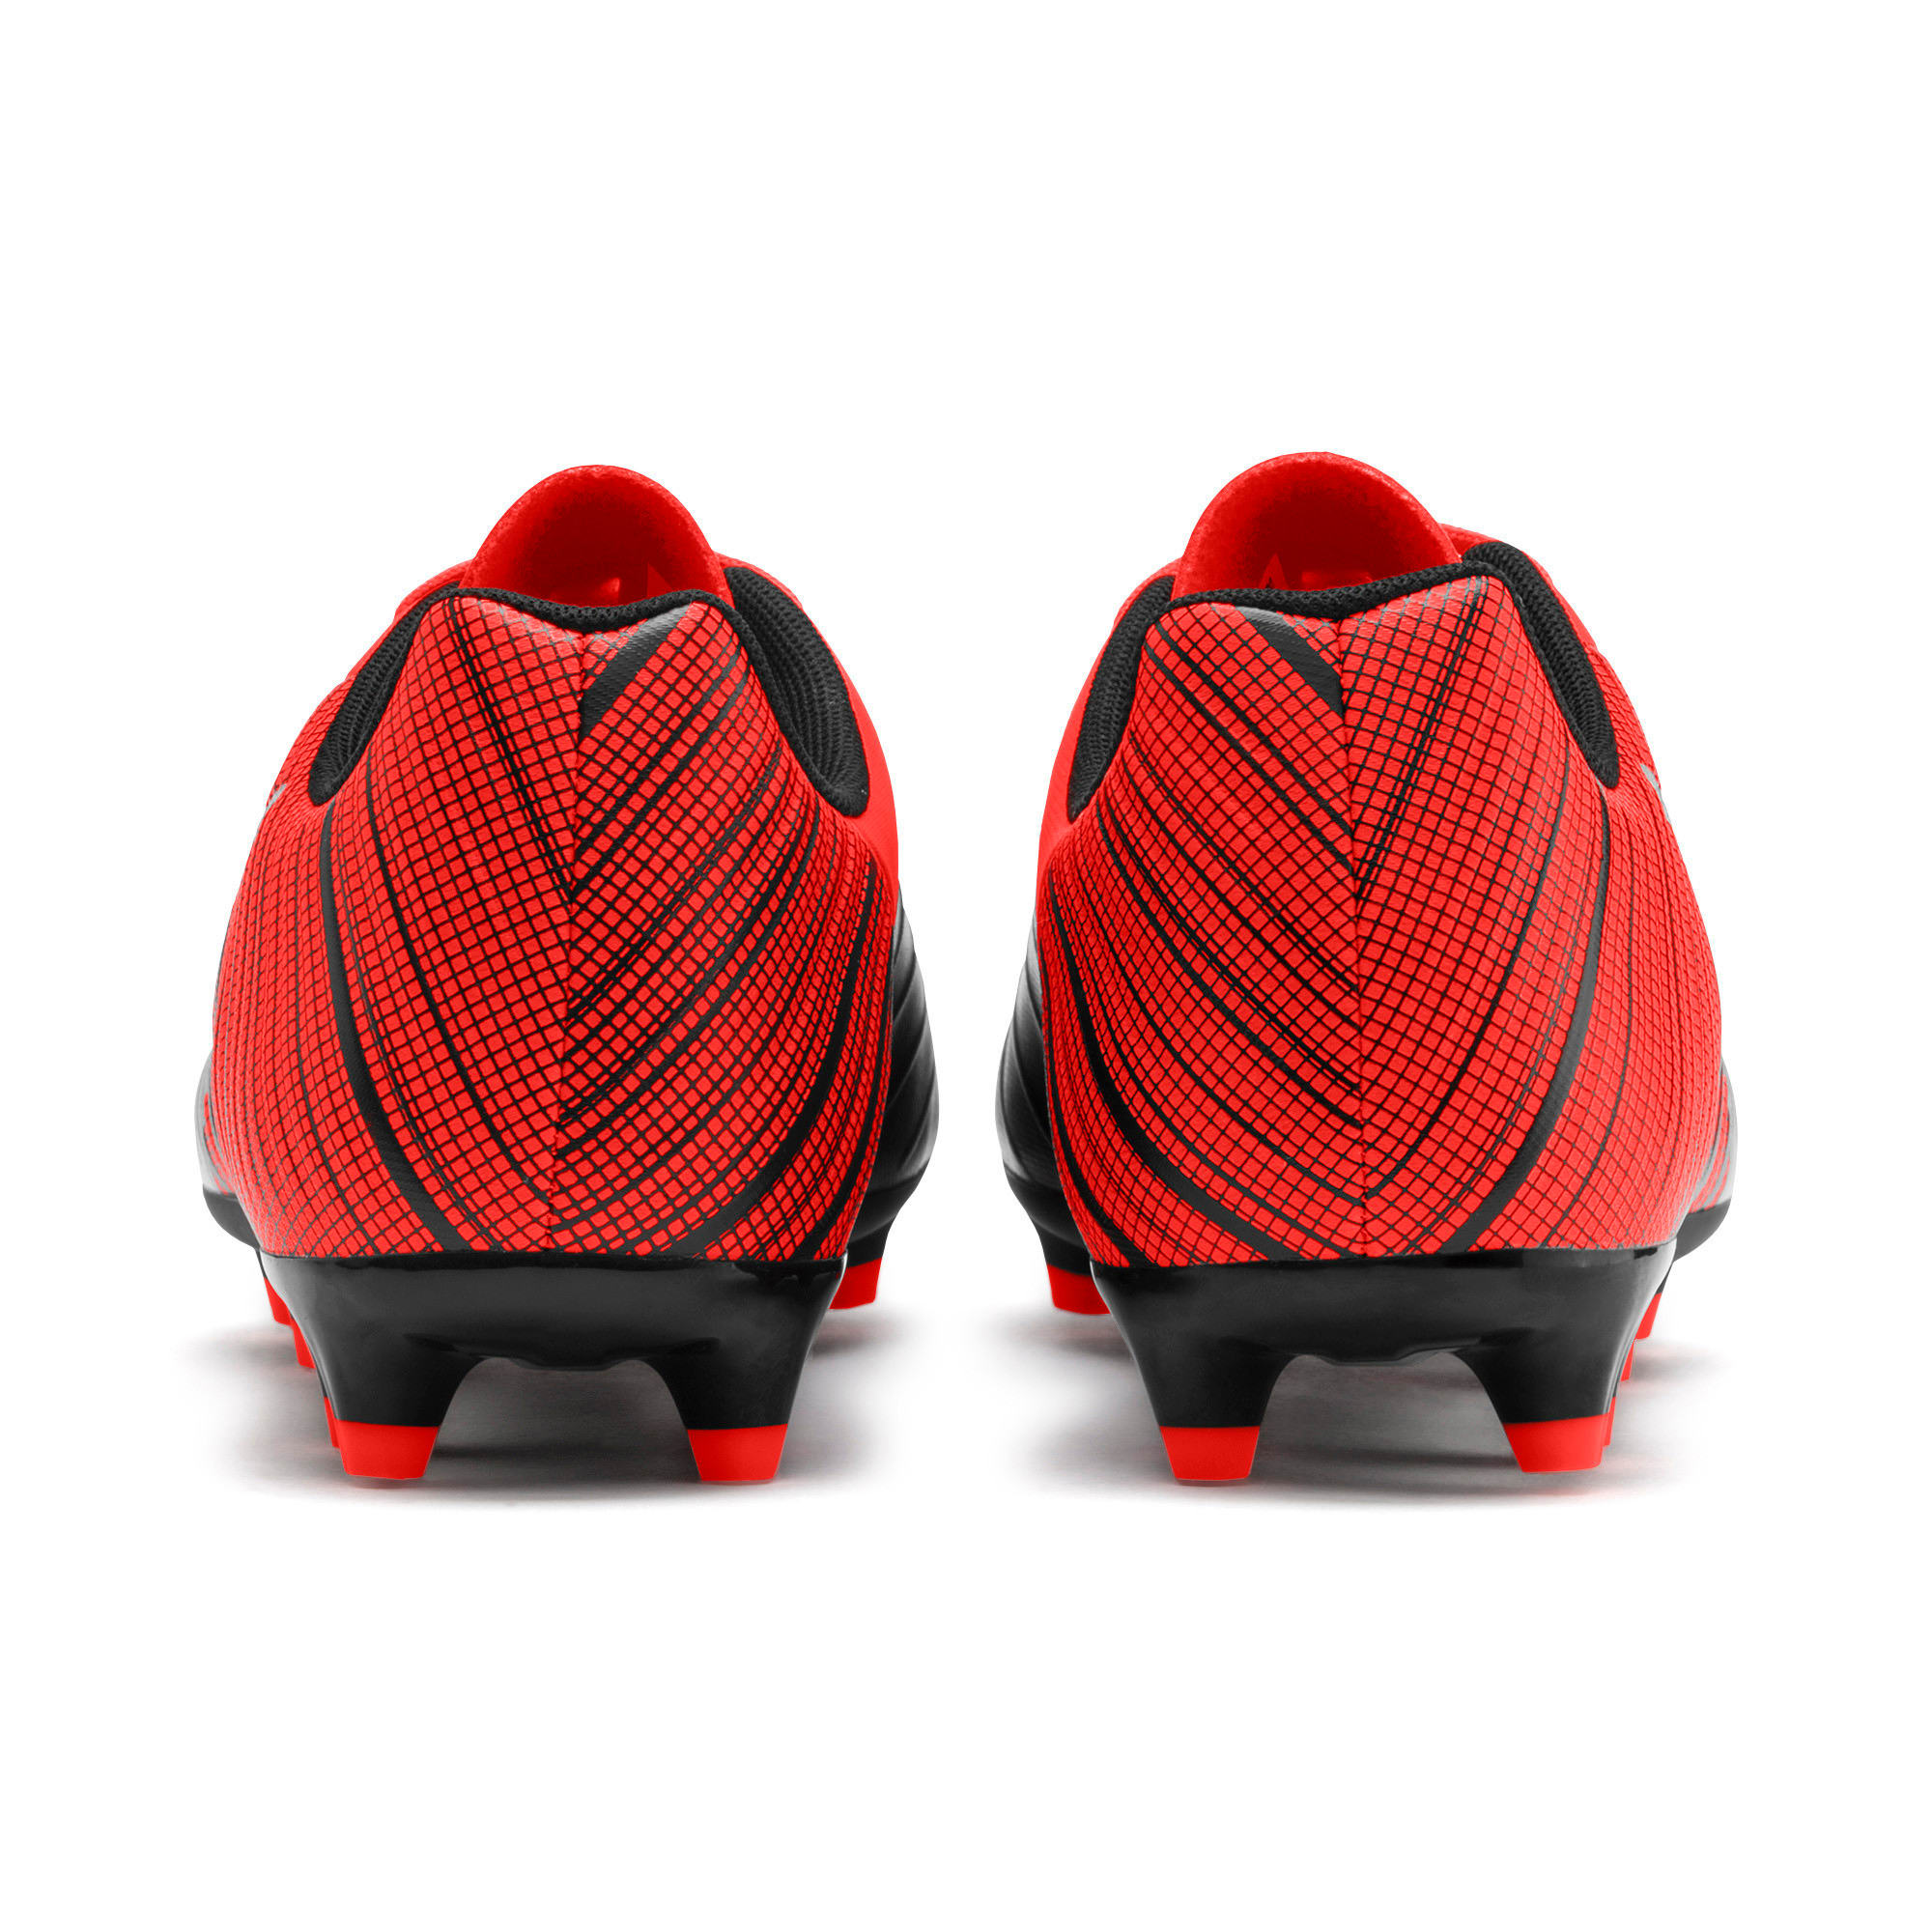 Thumbnail 4 of PUMA ONE 5.4 FG/AG Men's Soccer Cleats, Black-Nrgy Red-Aged Silver, medium